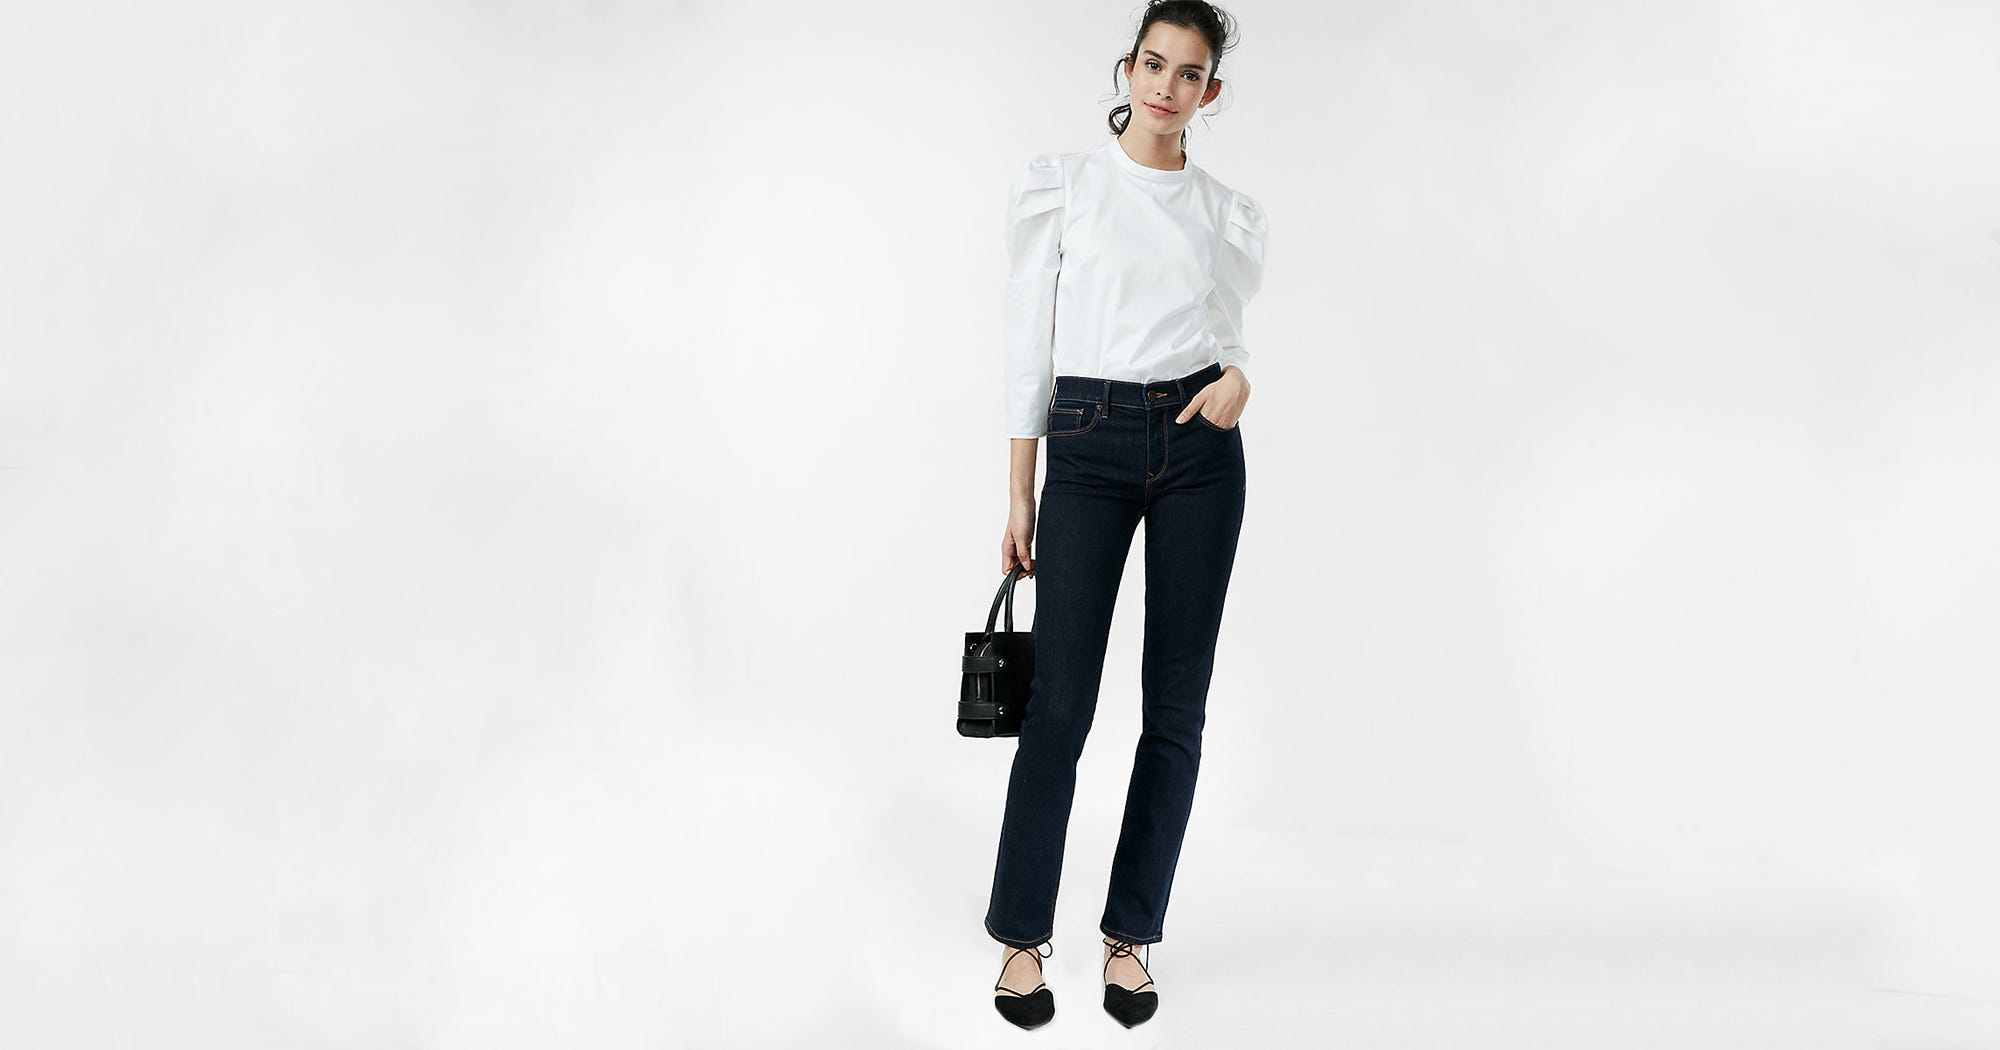 Petite Girls, These Are The Jeans For You